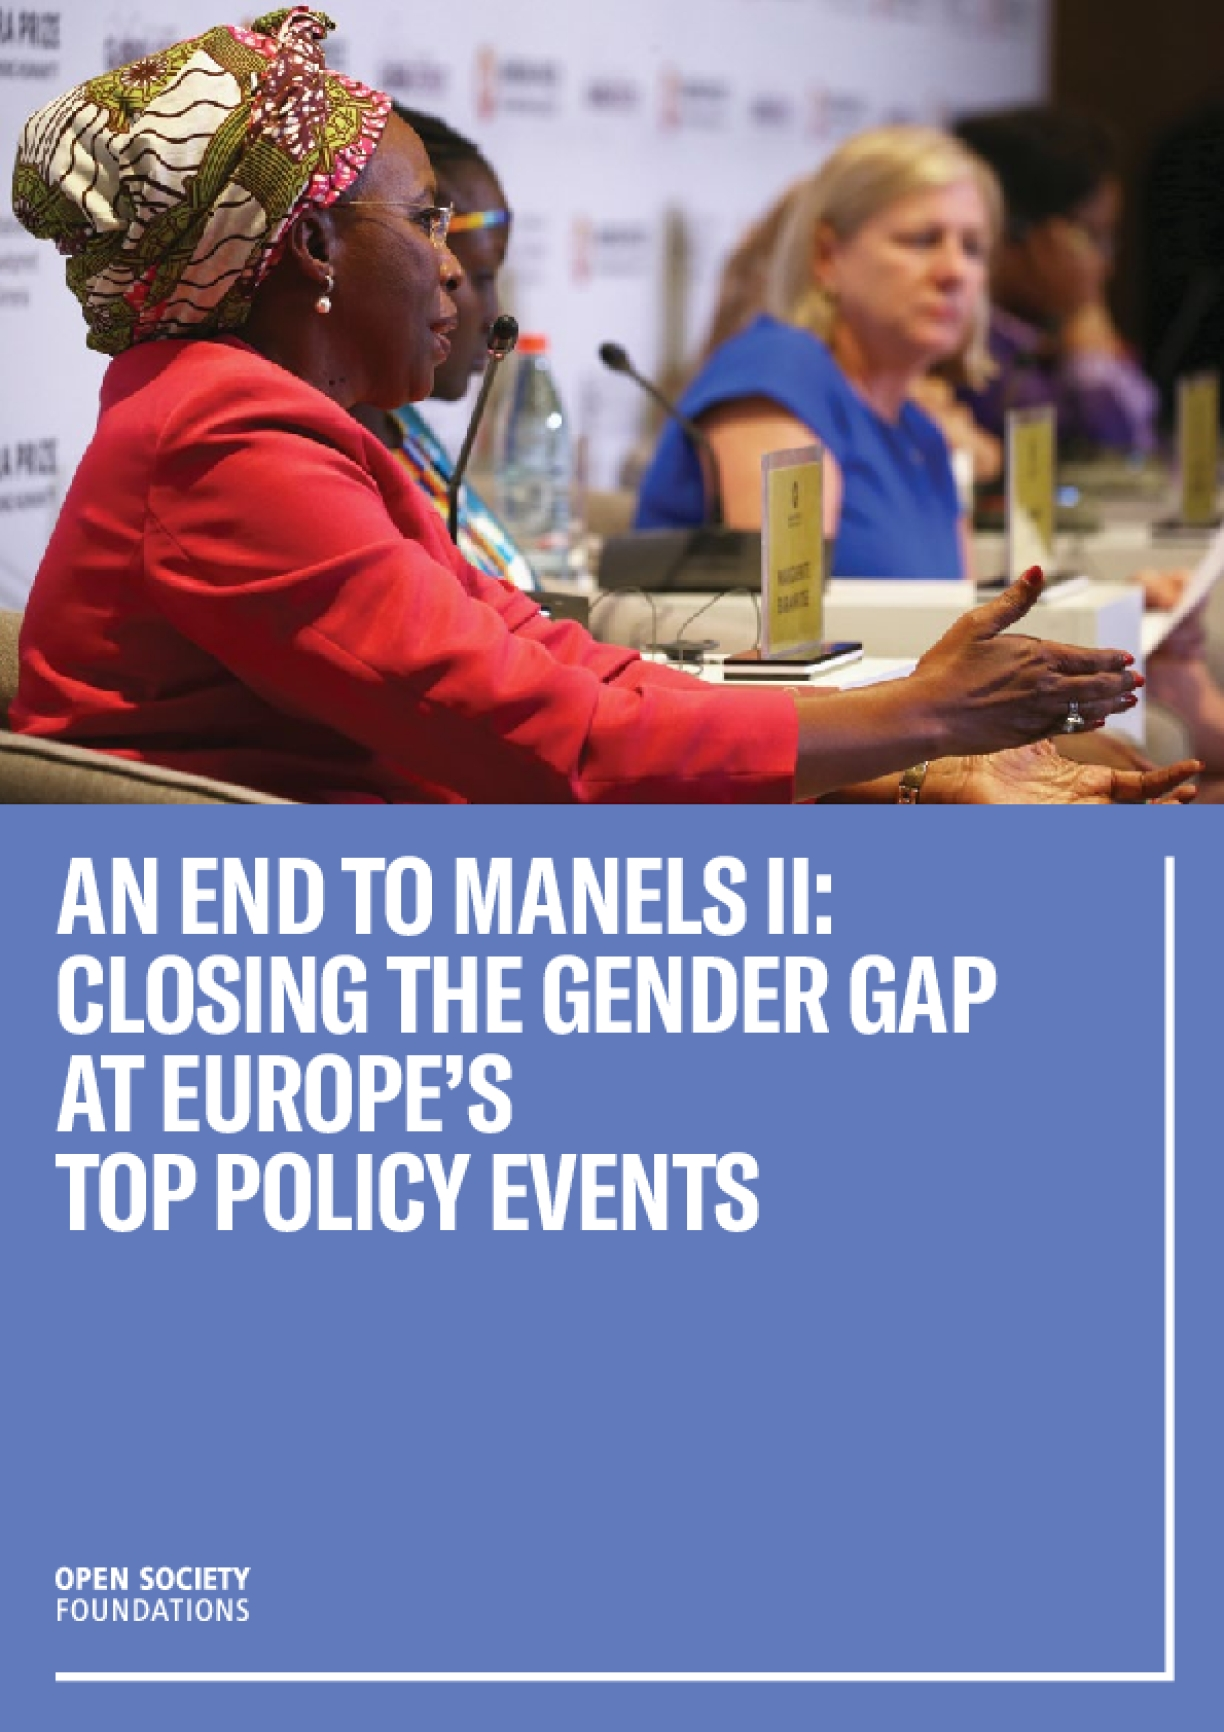 An End to Manels II: Closing the Gender Gap at Europe's Top Policy Events